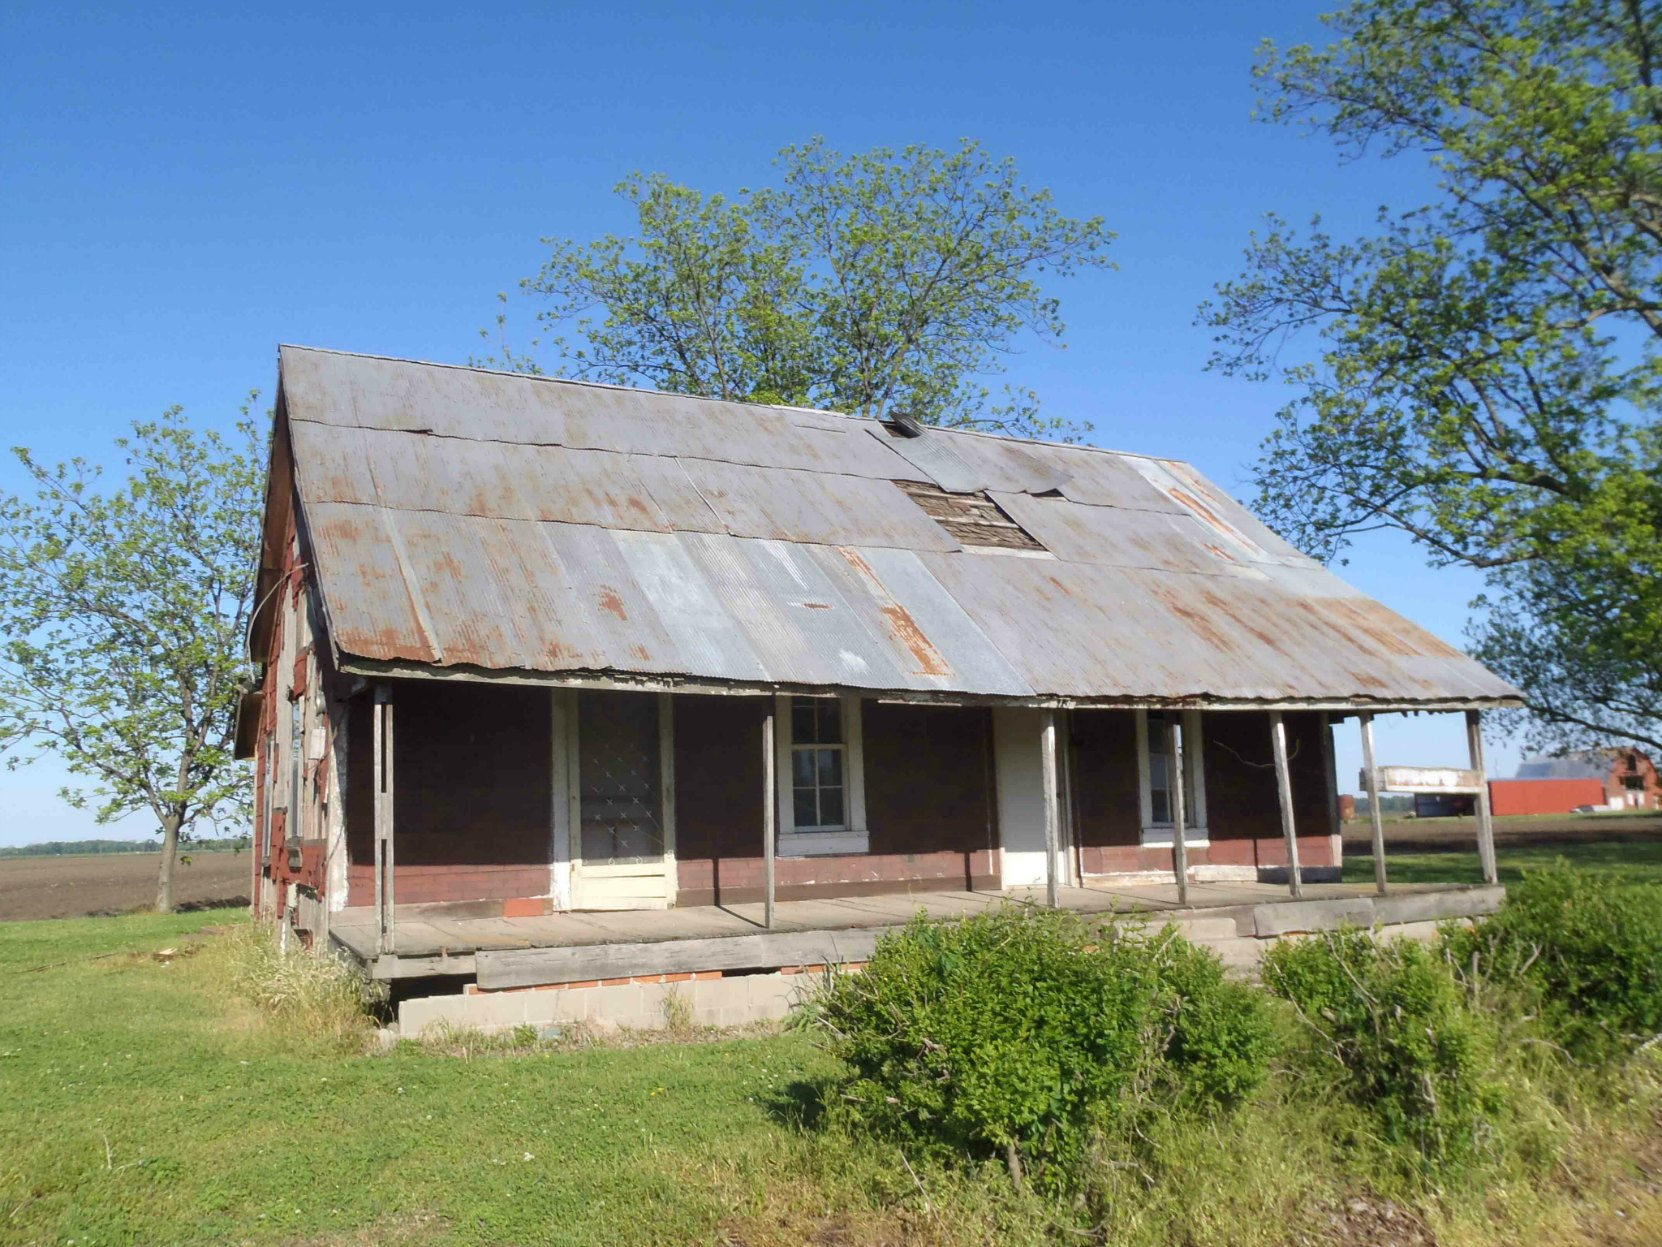 This abandoned house on the highway between the Muddy Waters House site and the Stovall farms entrance gives some indication of farm housing at the time Muddy Waters lived at Stovall Farms.